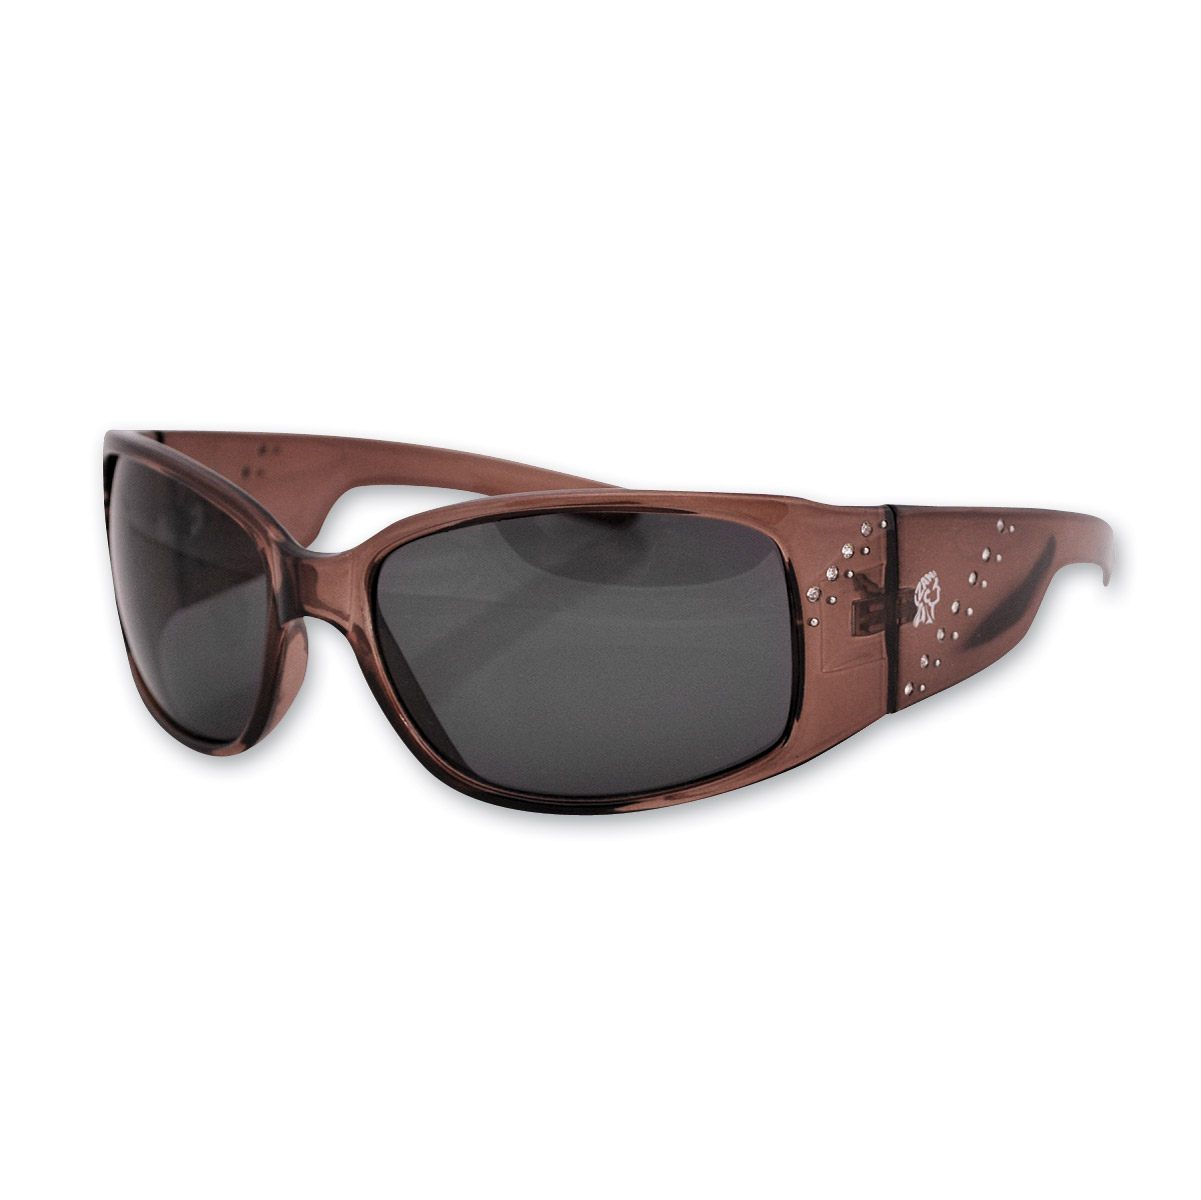 ZAN headgear Boise Crystal Brown Sunglasses with Smoked Lenses